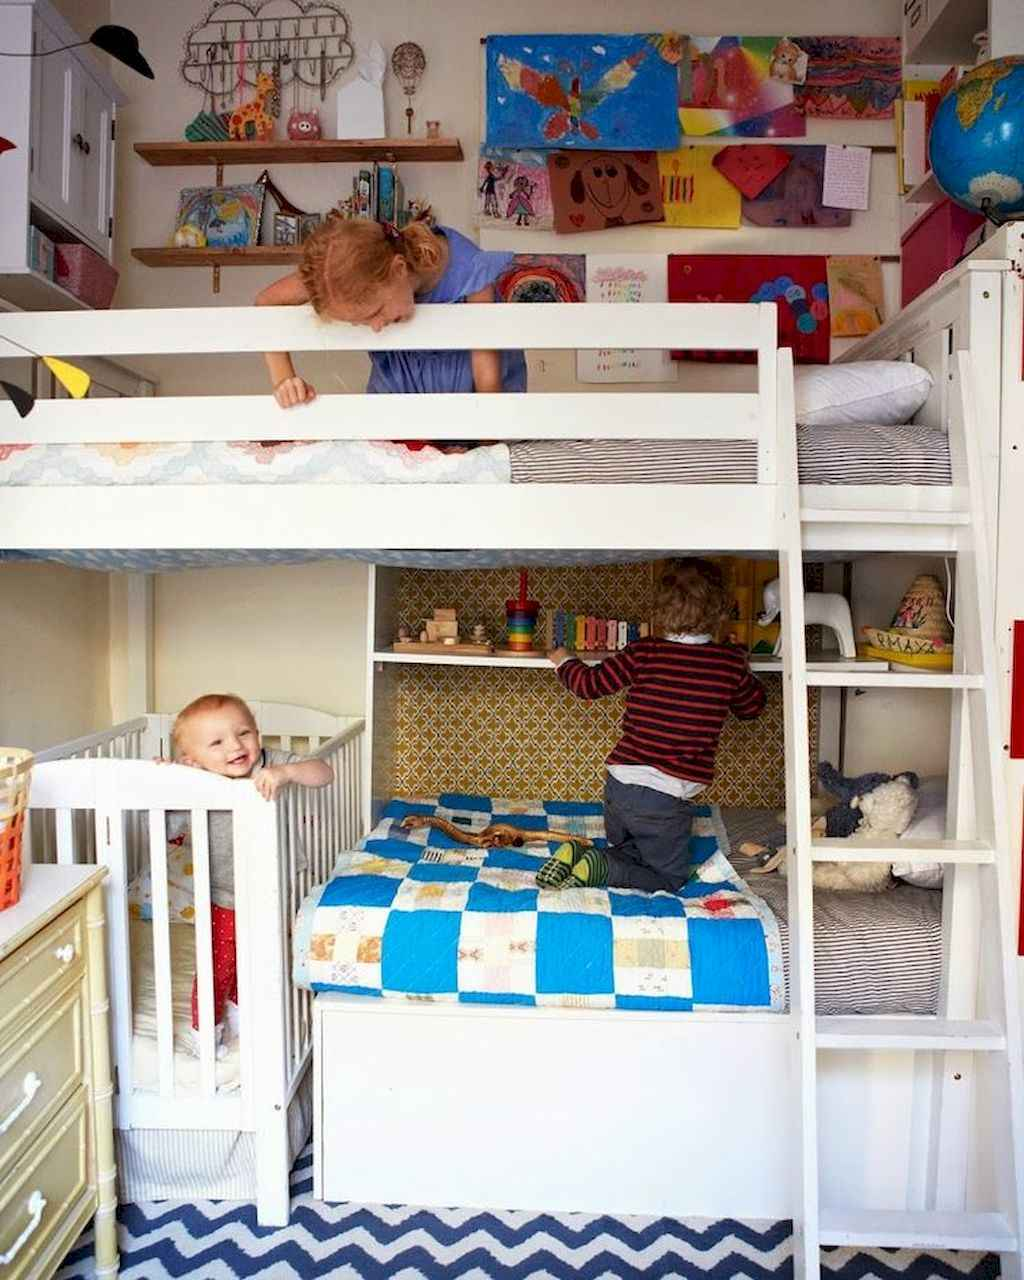 Awesome ideas bedroom for kids (49)